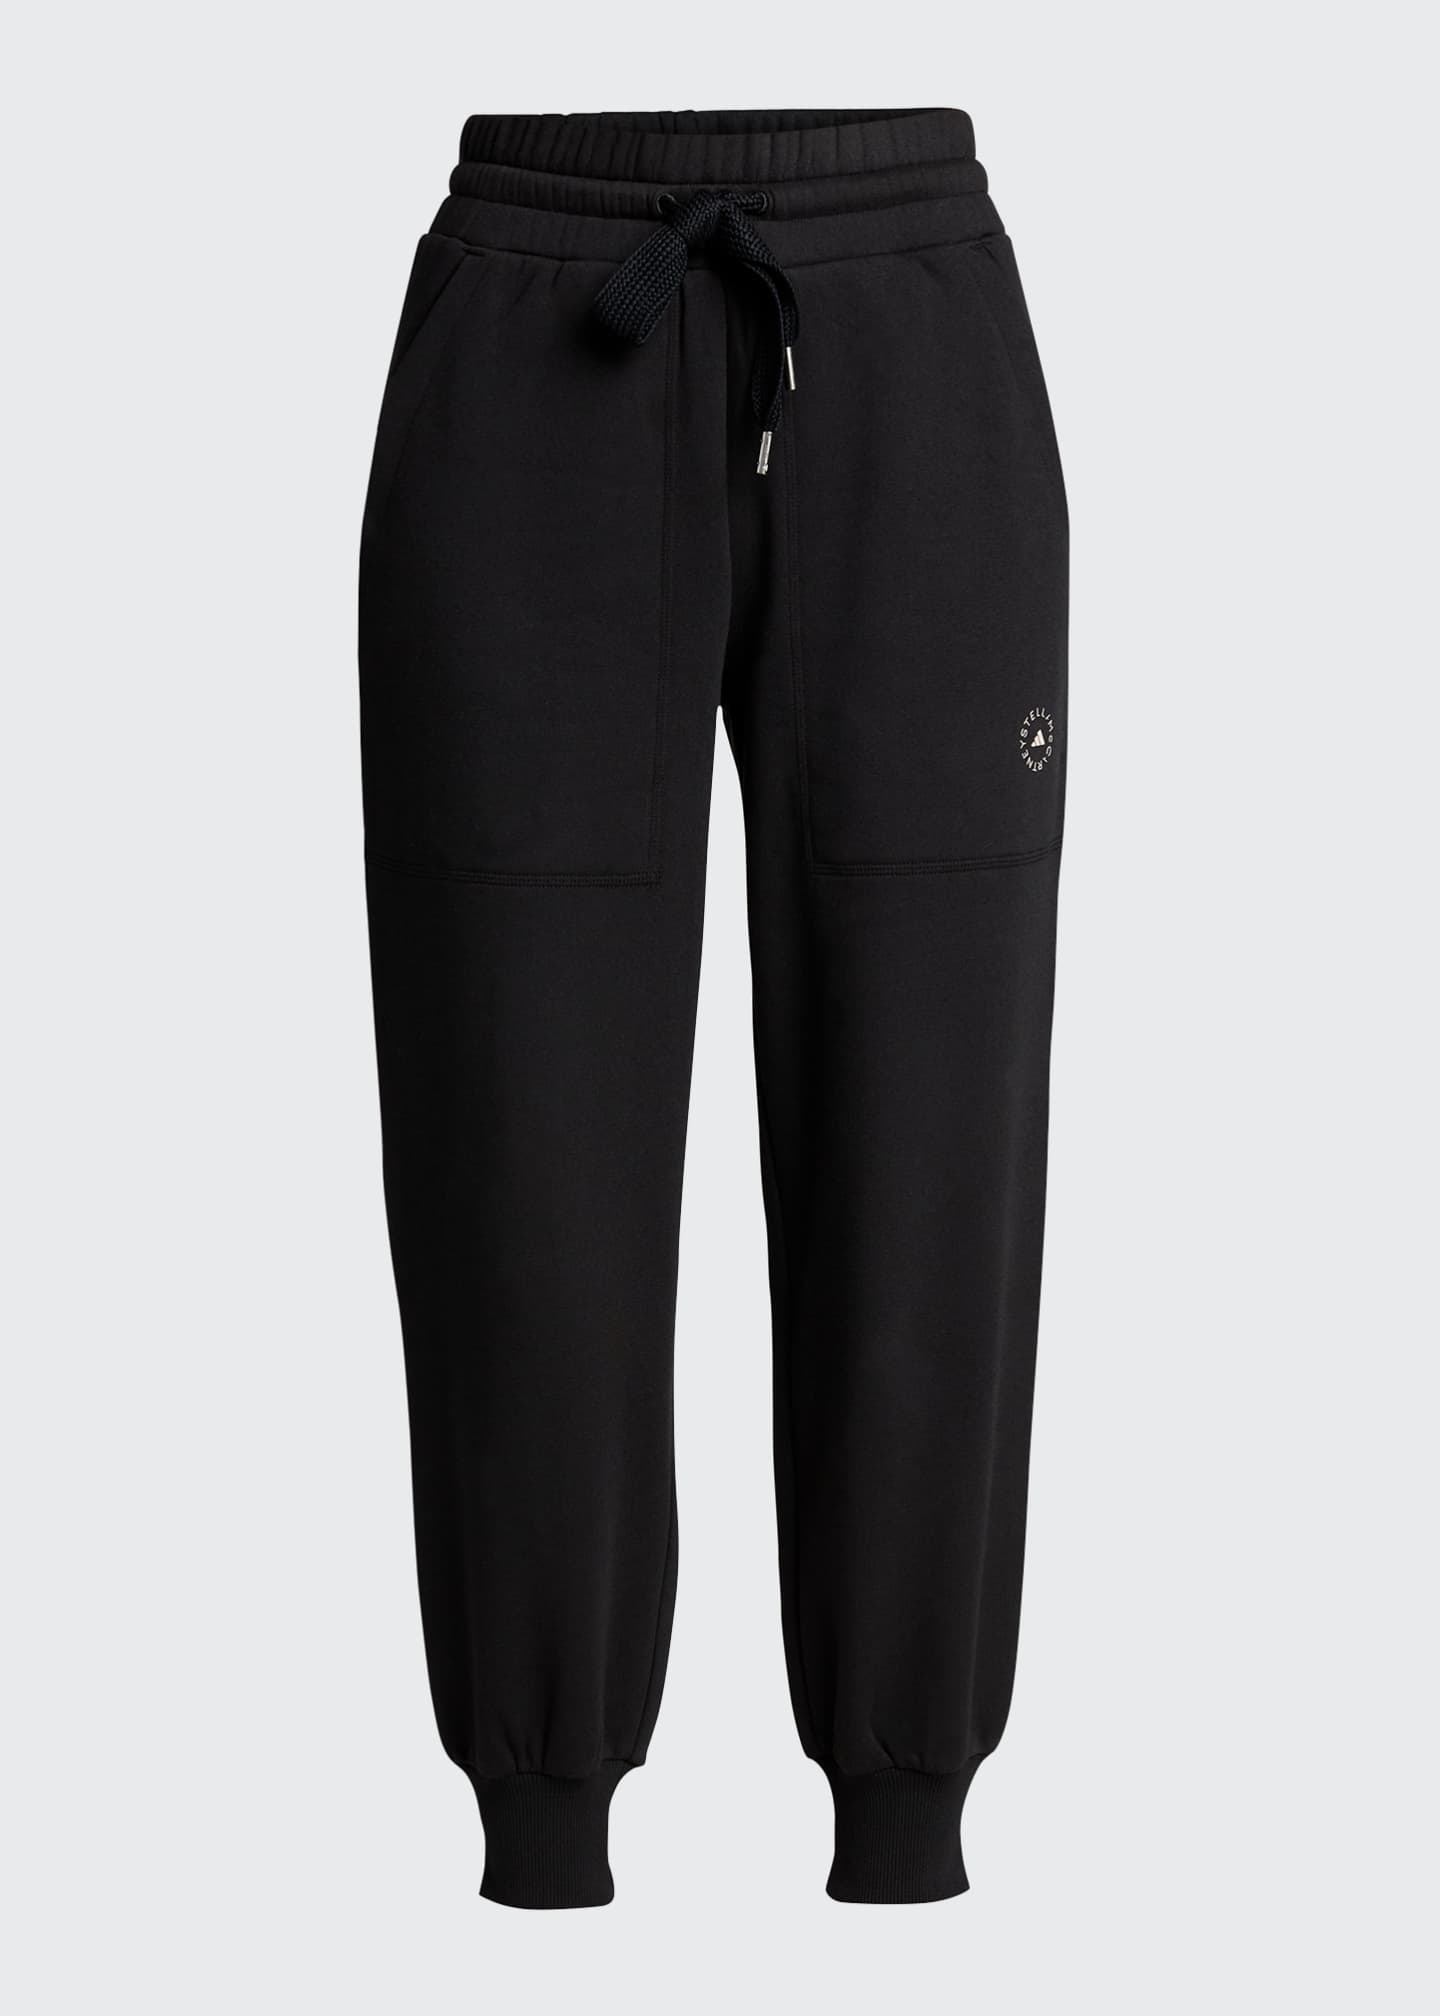 Image 5 of 5: French Terry Sweatpants